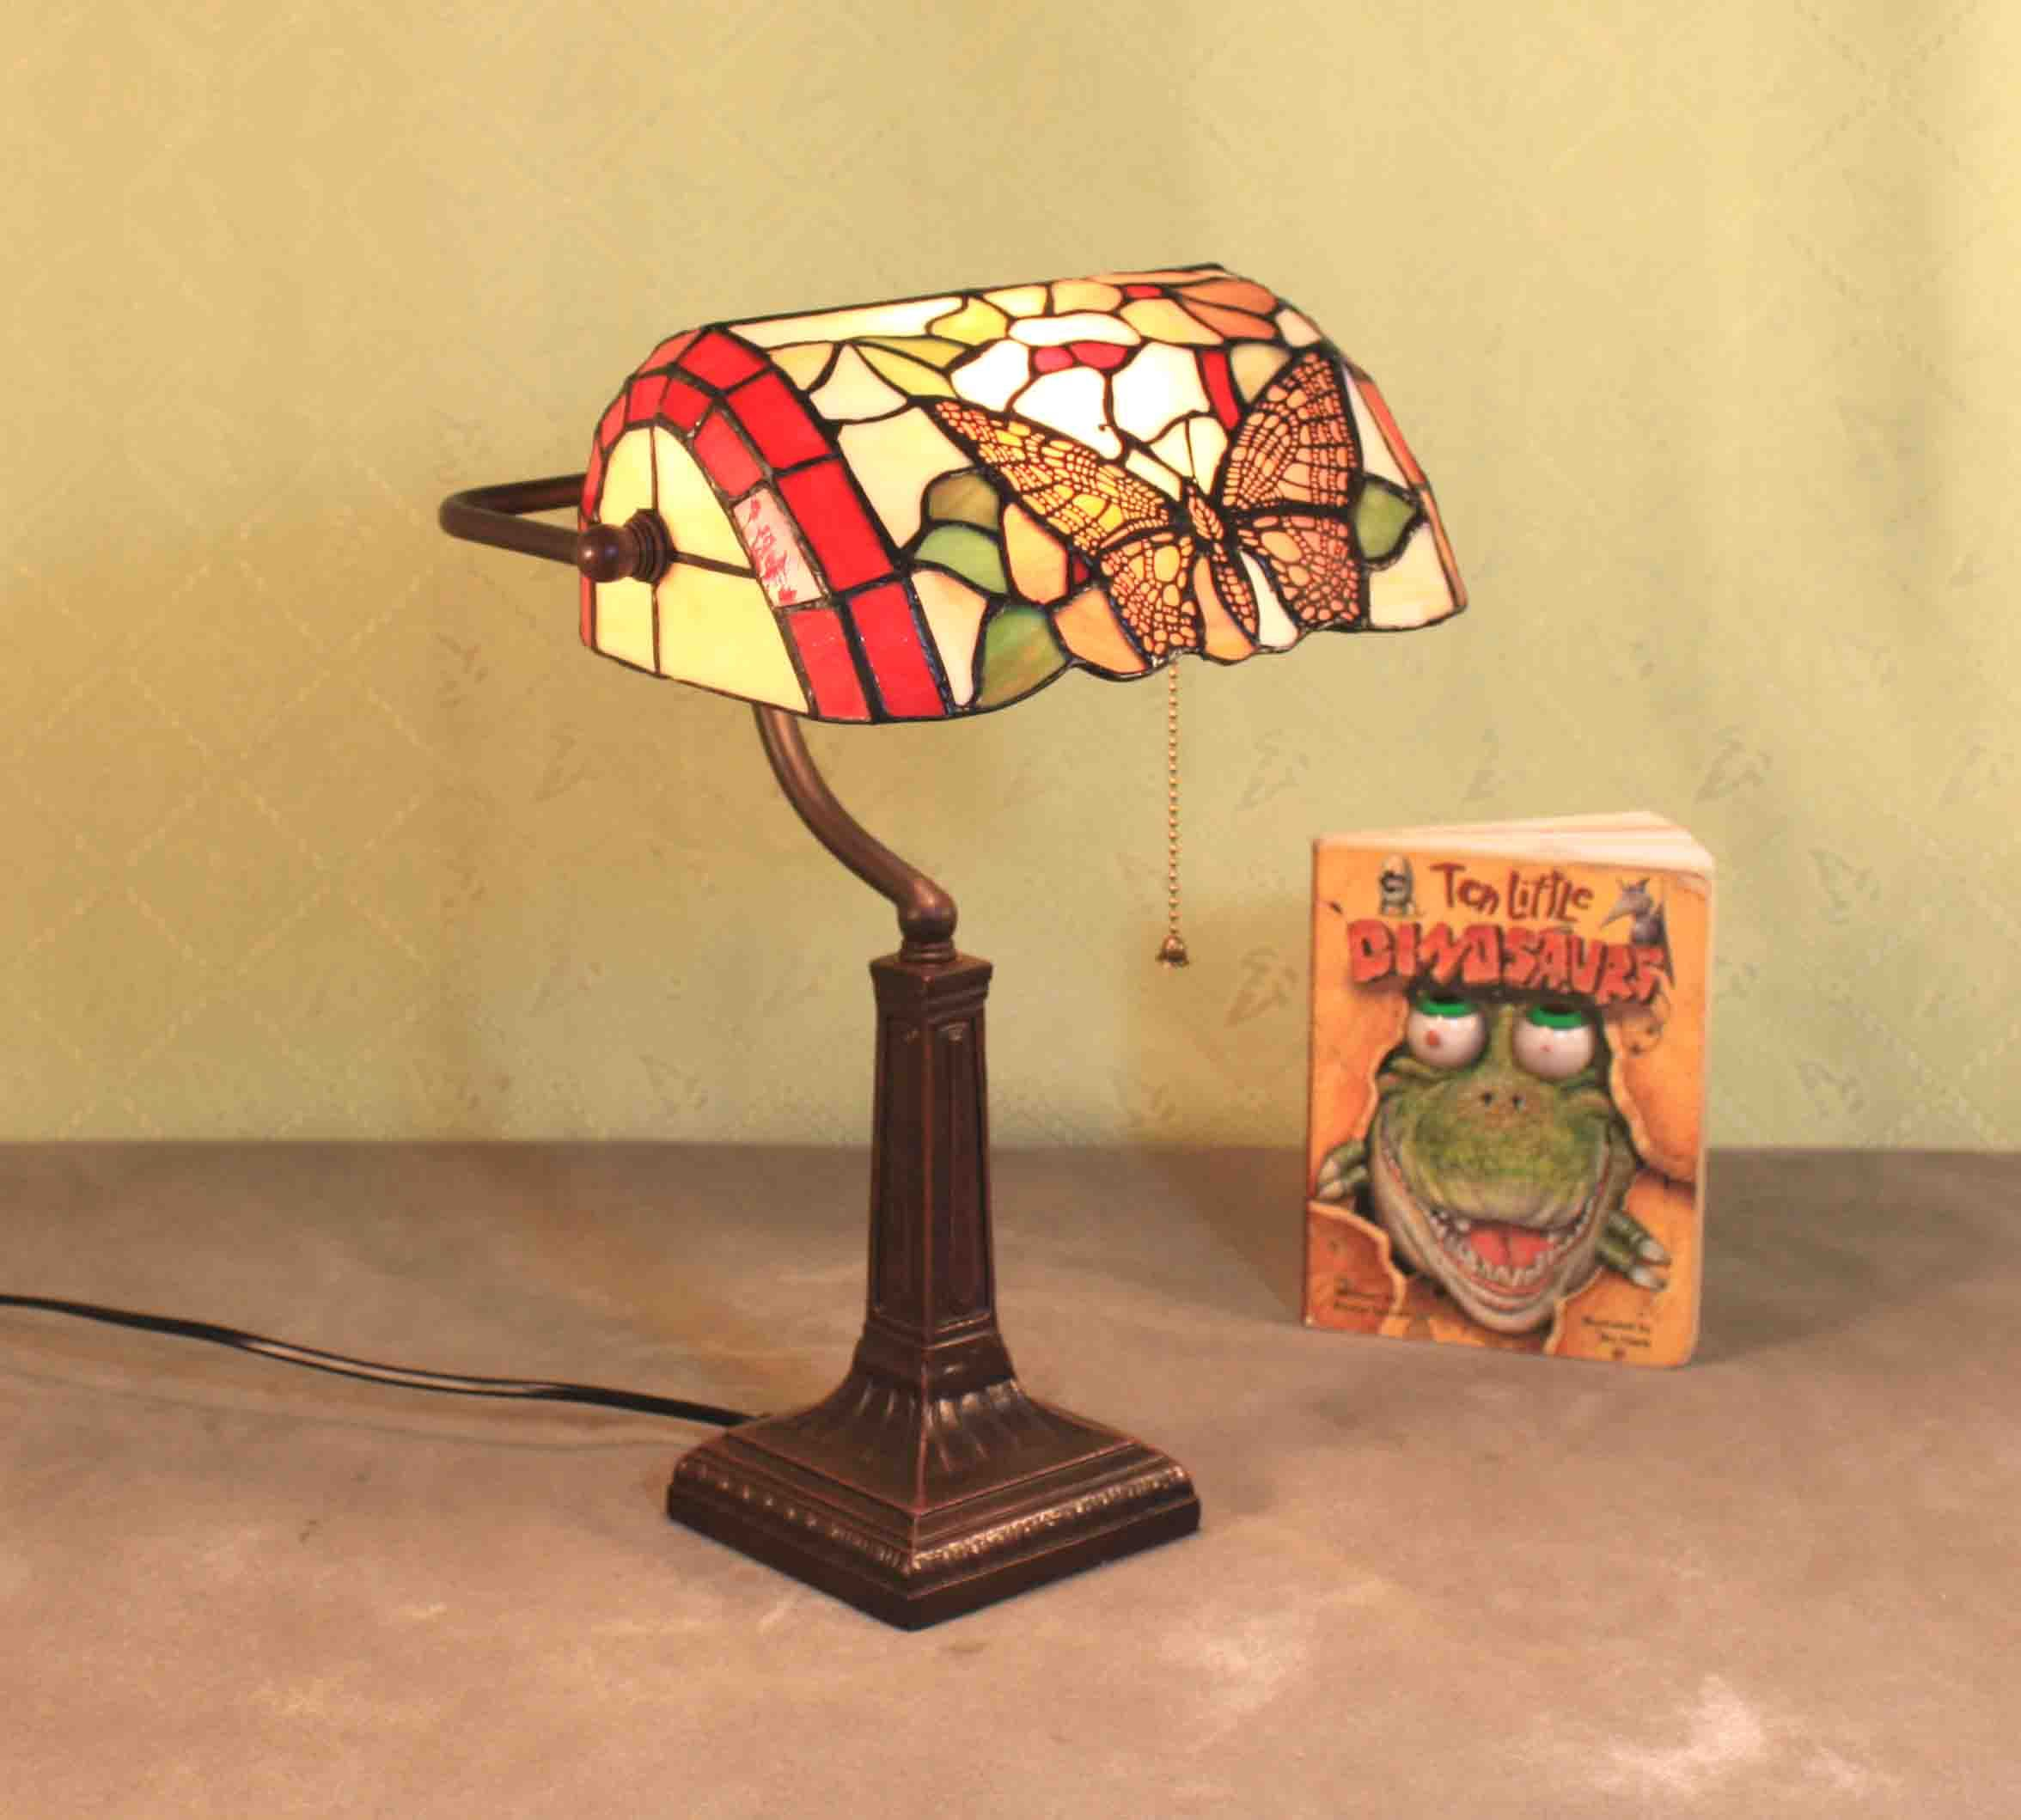 Hot Item Home Decoration Tiffany Lamp Table Lamp T16315b Tiffany Lamps Table Lamp Lamp